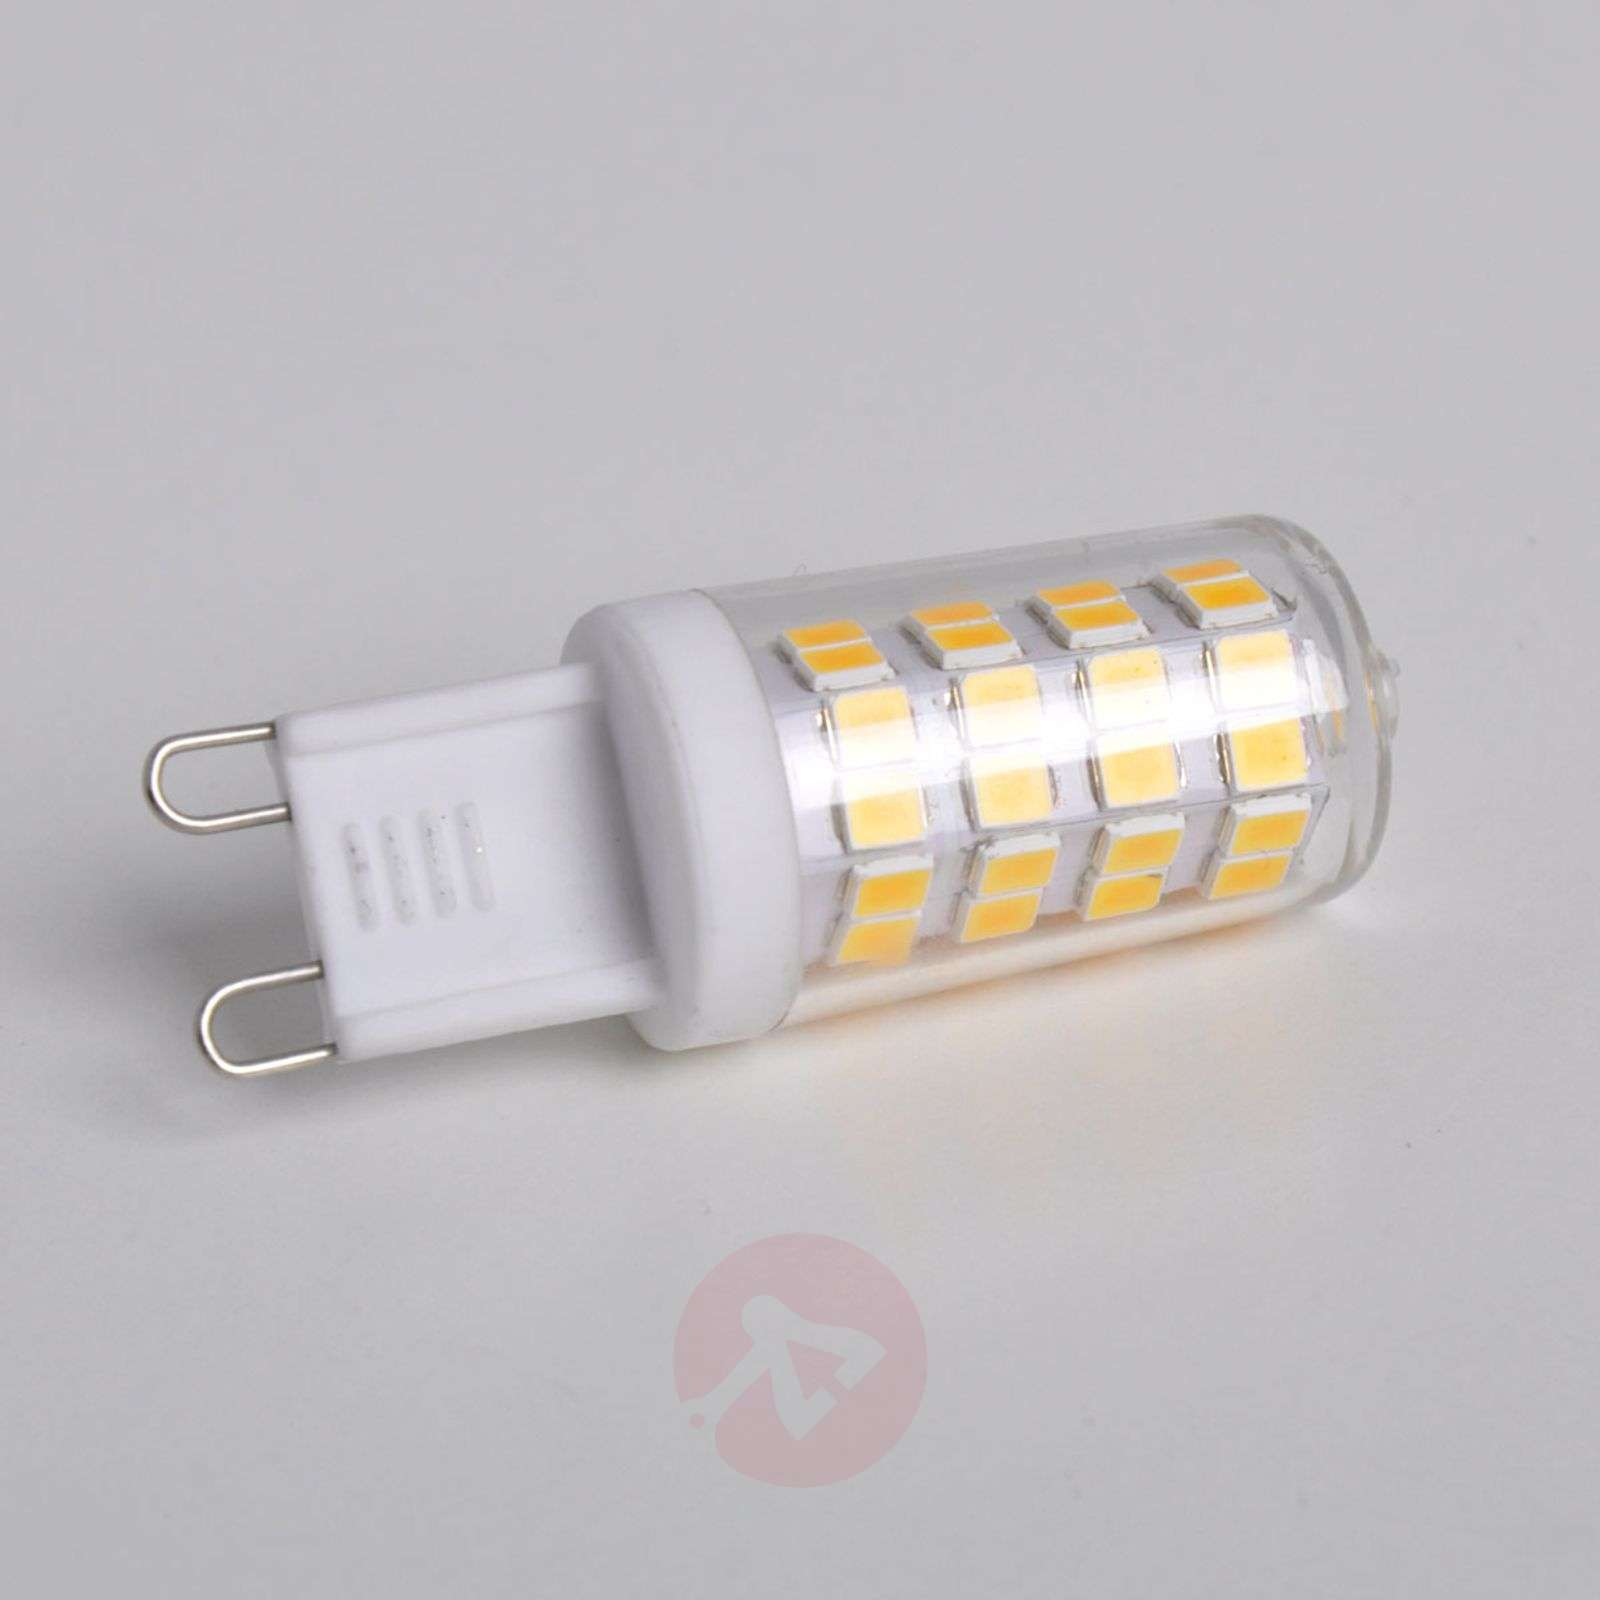 Ampoule à broches LED G9 3W 829